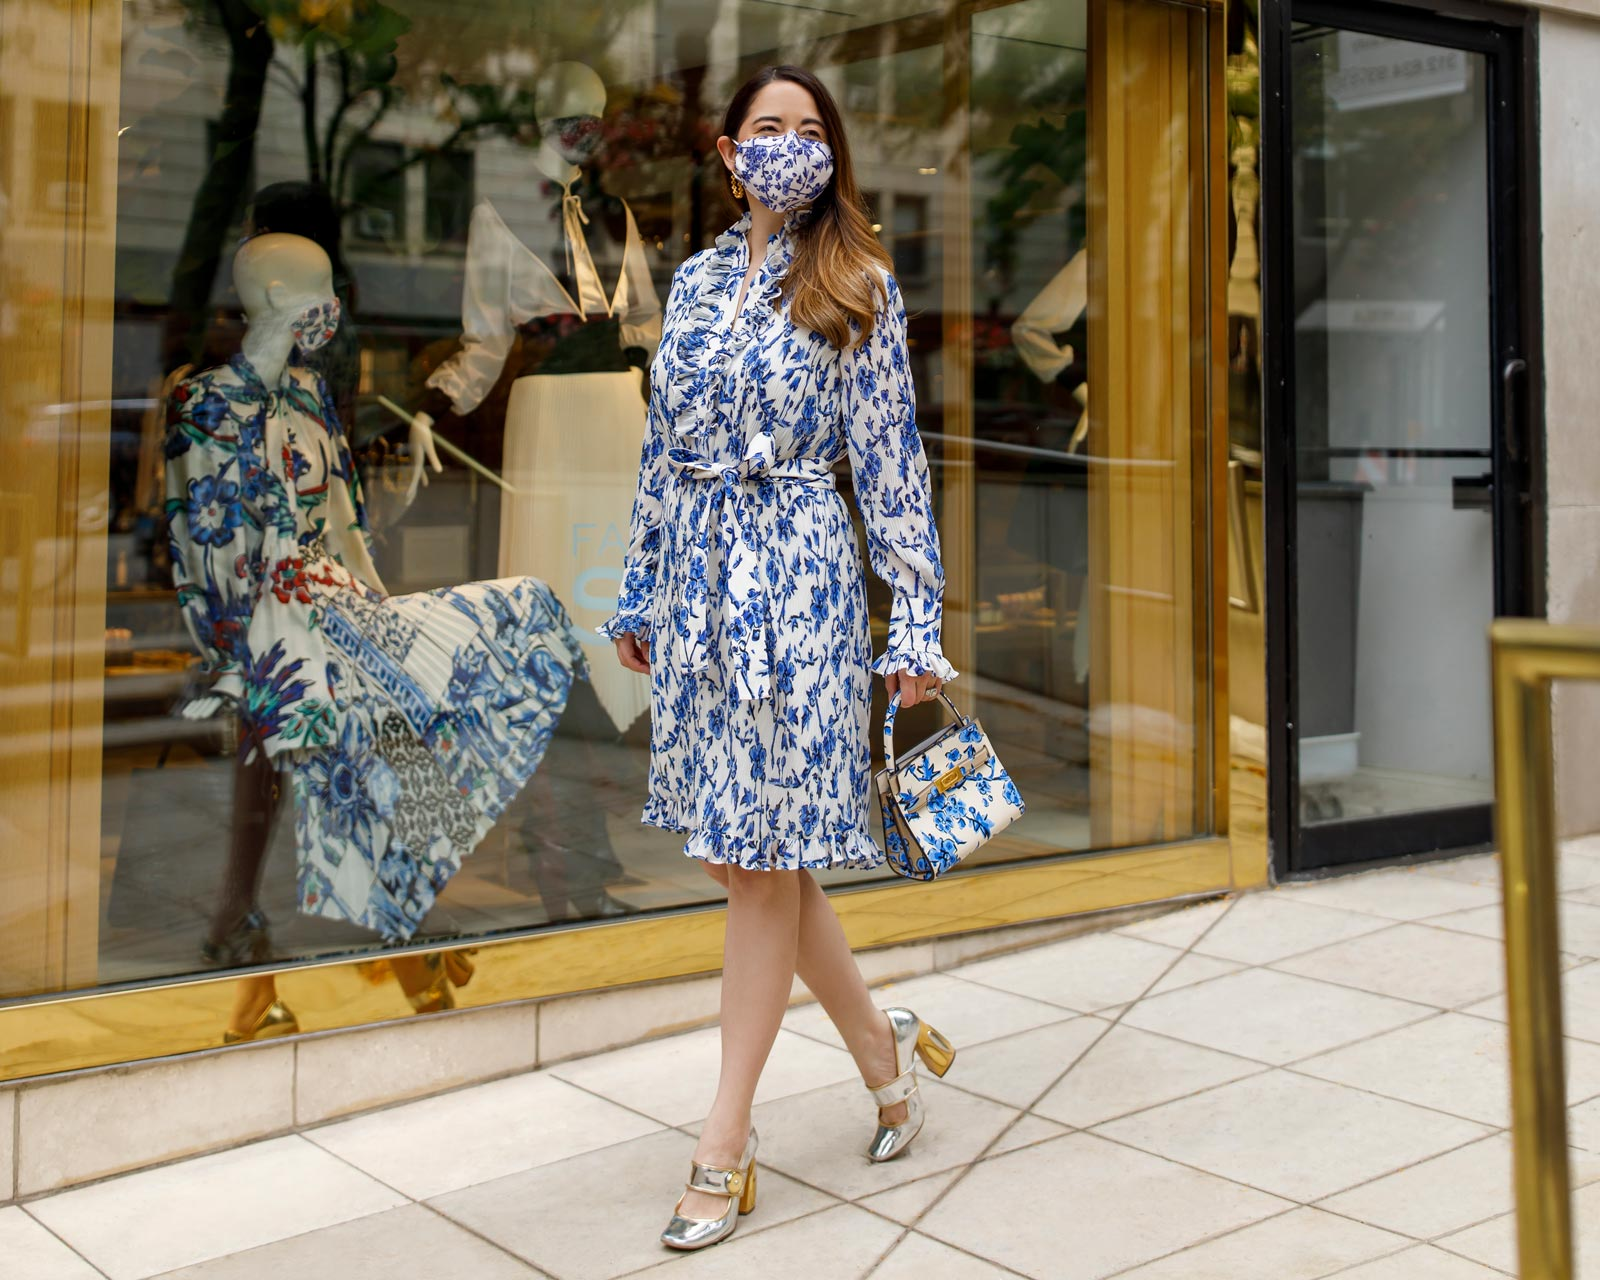 Jennifer Lake Tory Burch Blue Floral Dress